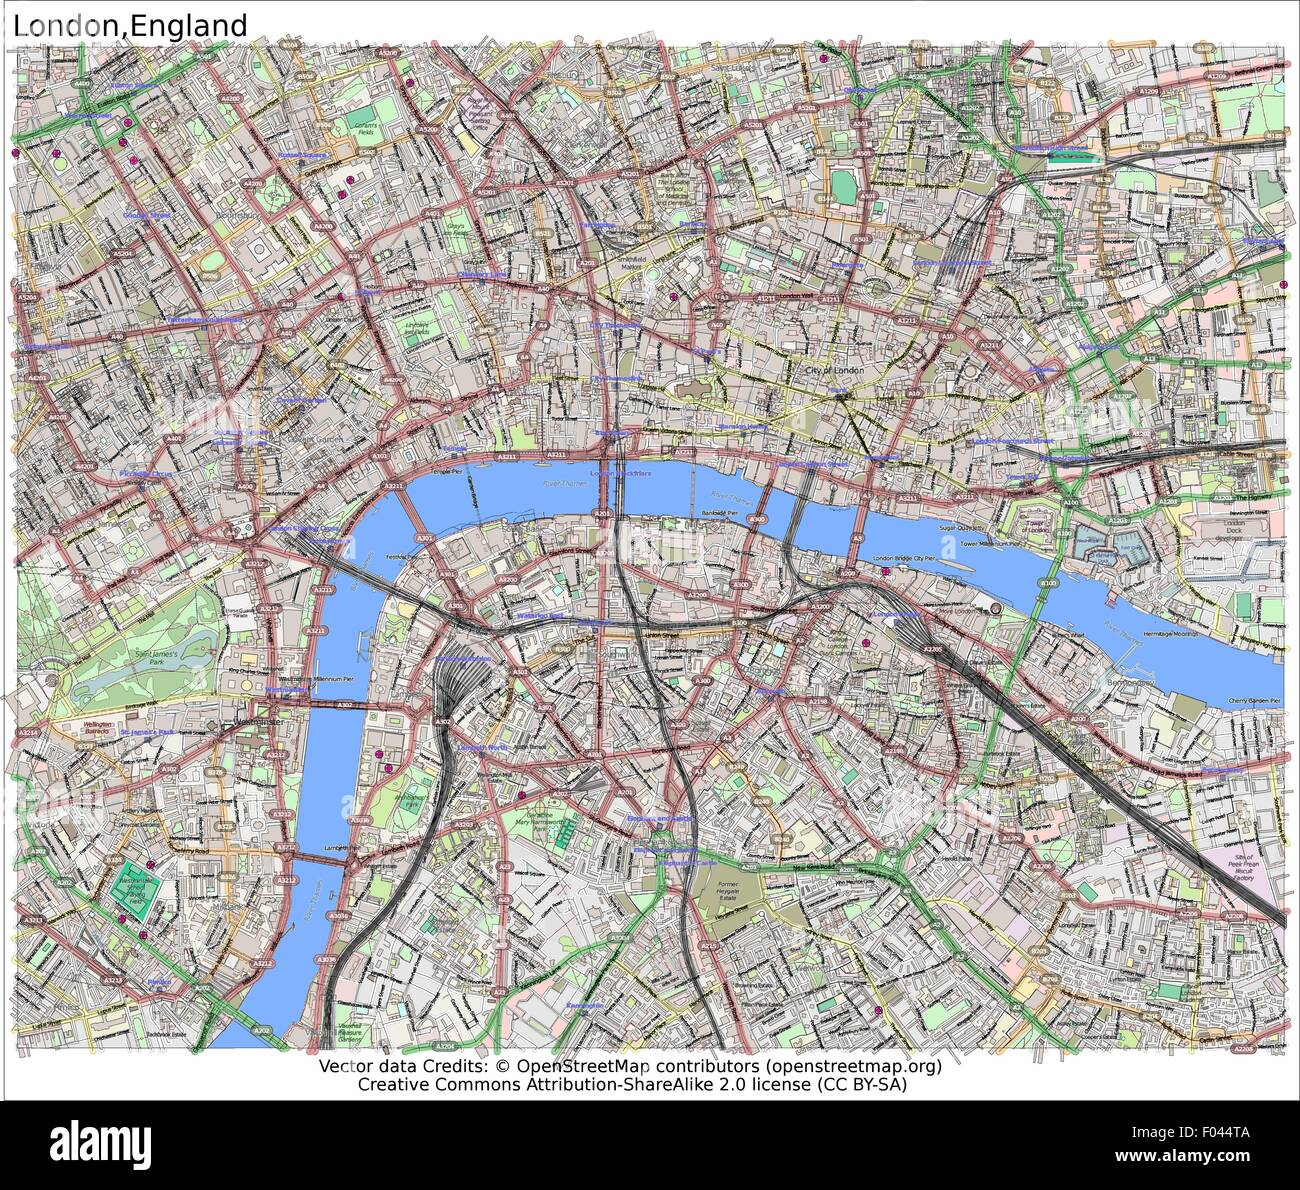 London On The Map Of England.England Map Stock Photos England Map Stock Images Alamy